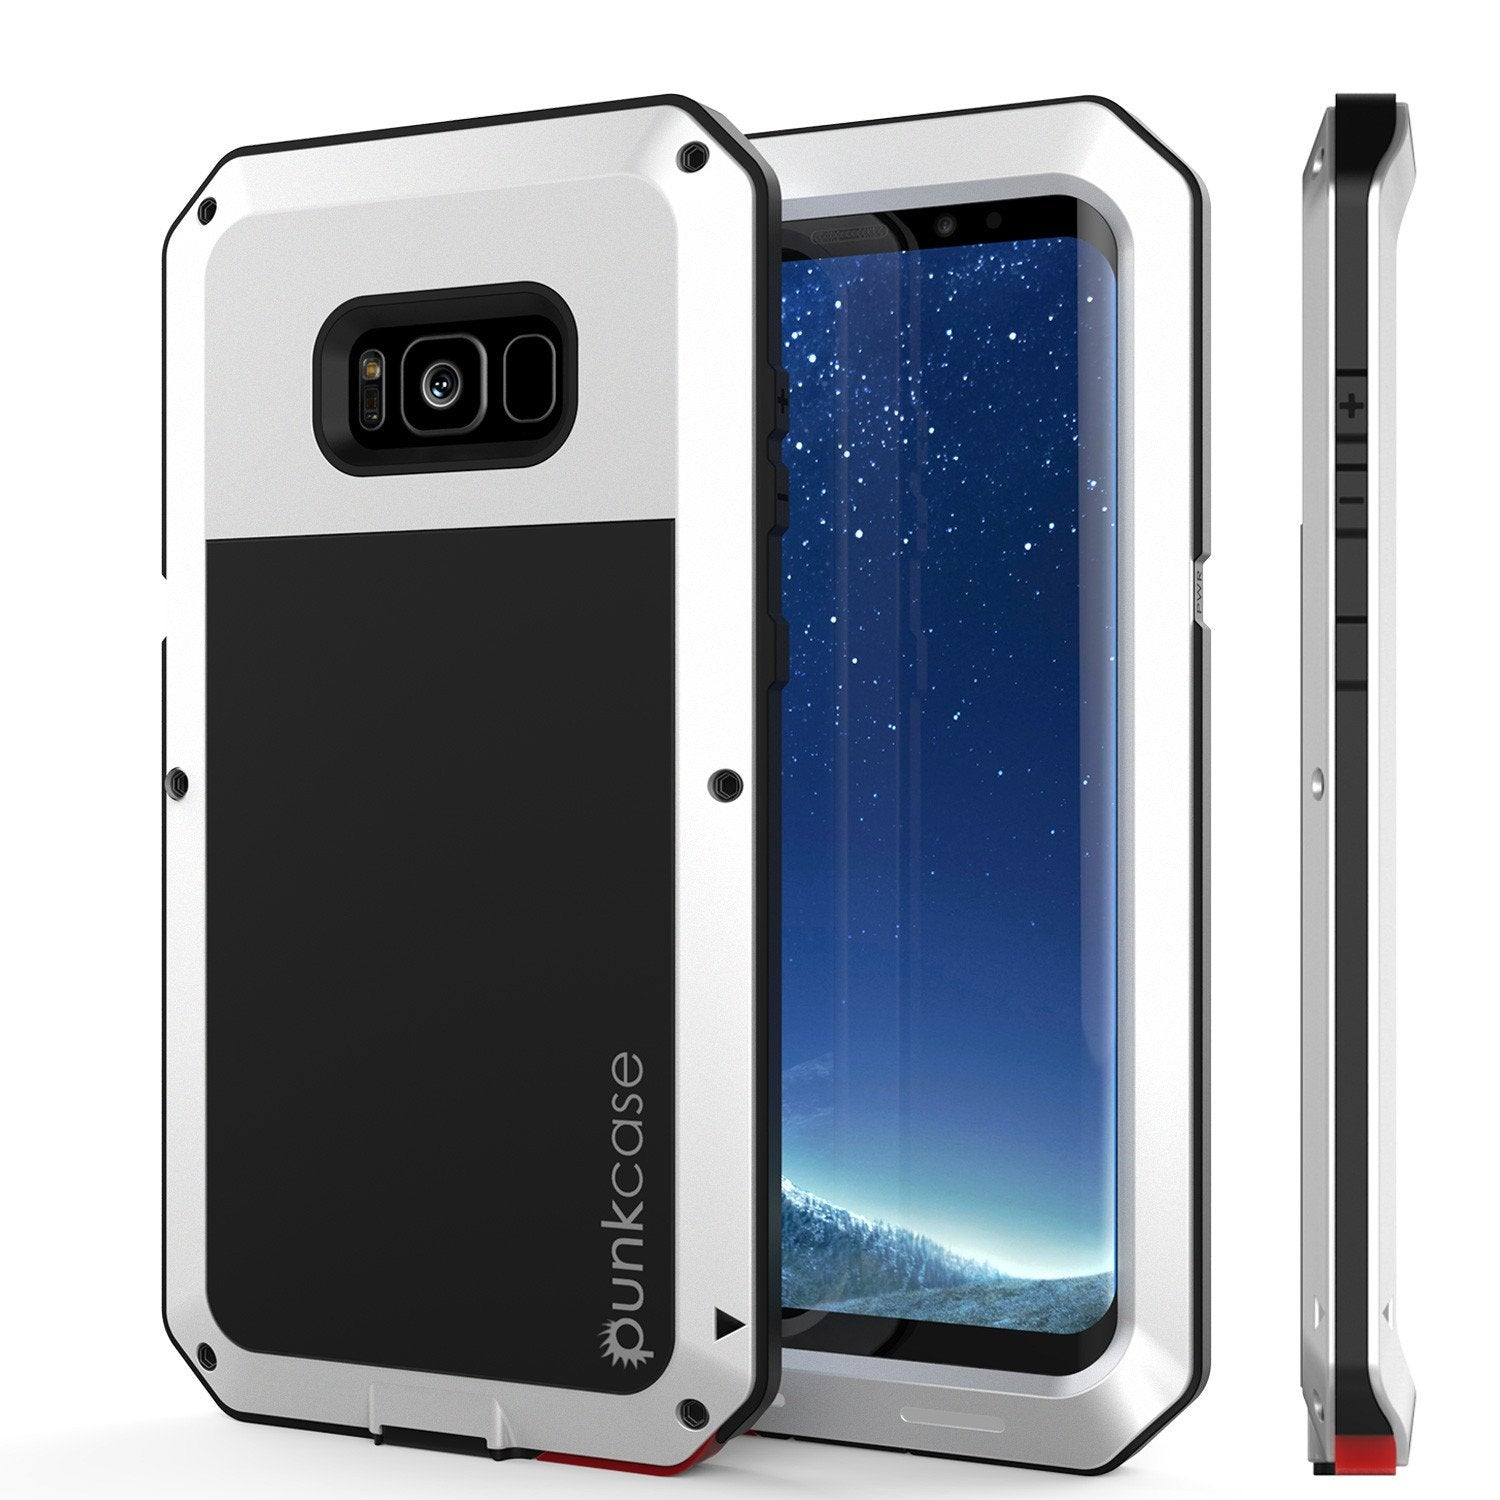 Galaxy S8 Metal Case, Heavy Duty Military Grade Rugged Cover [WHITE]